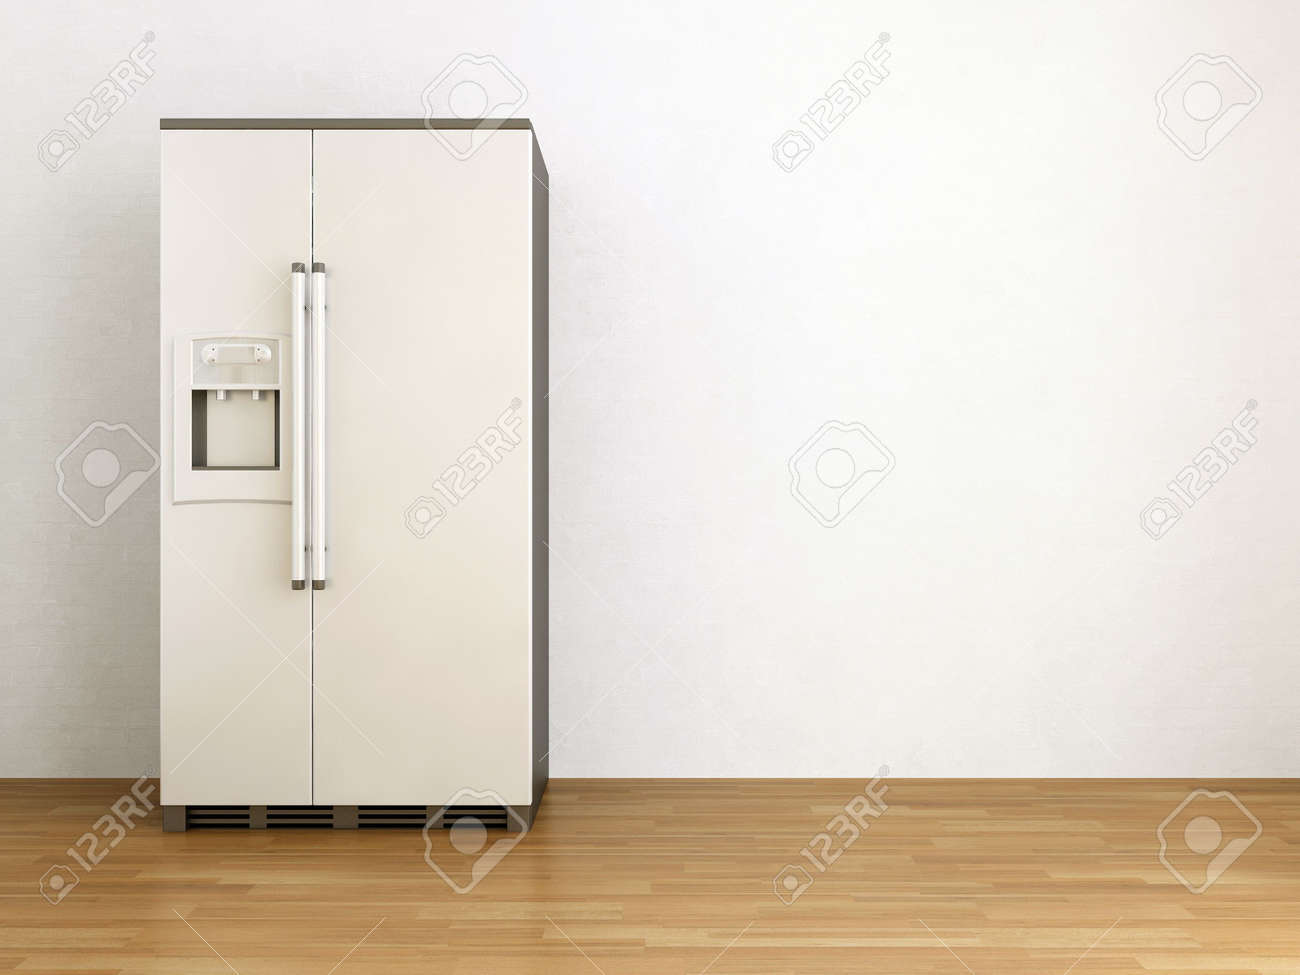 White refrigerator to face a blank wall - 5867551